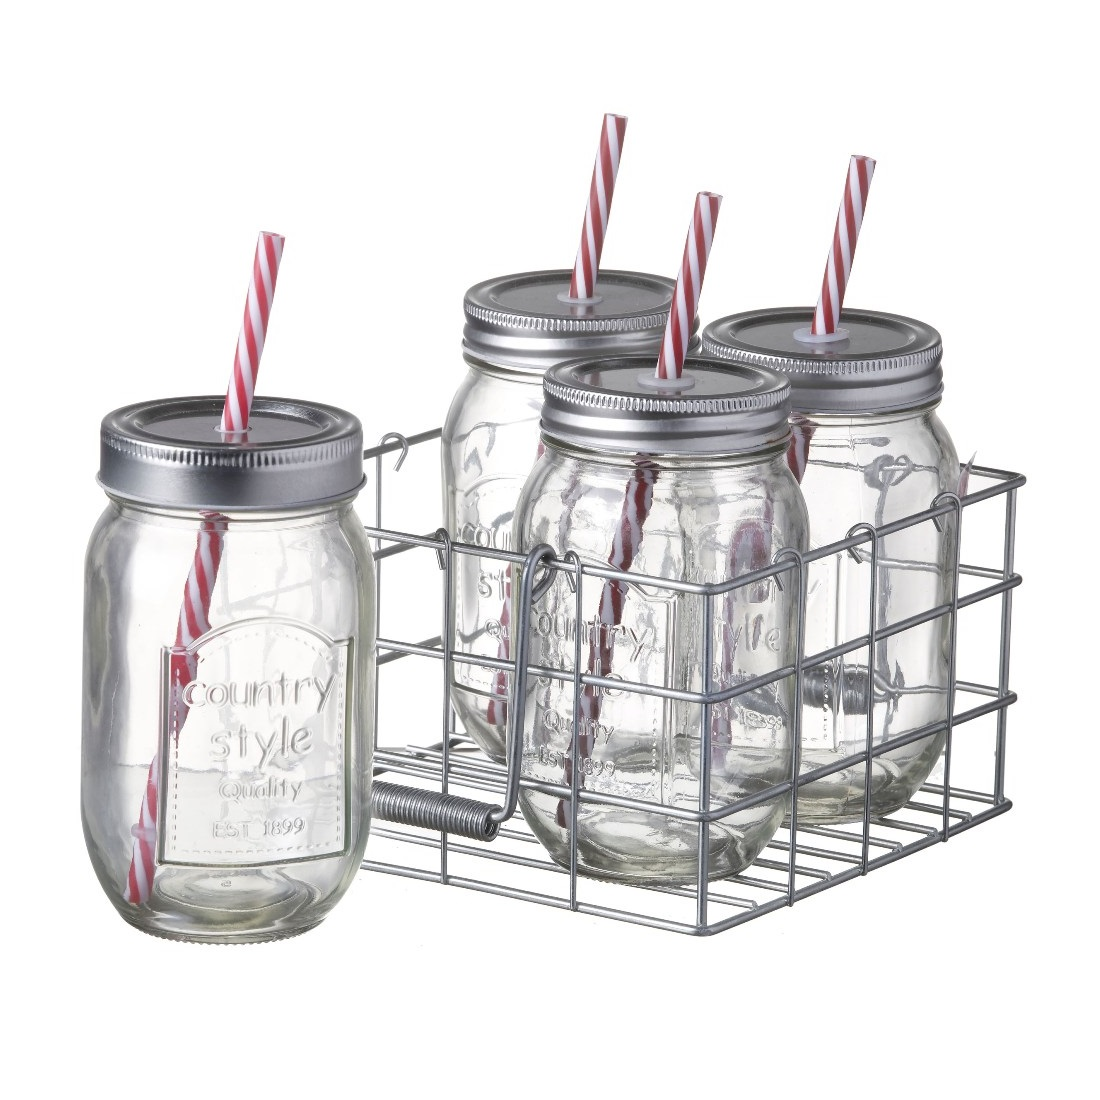 emhome-parlane-jam-jar-glass-drinking-straws-beverage-kitchen-glassware-690981